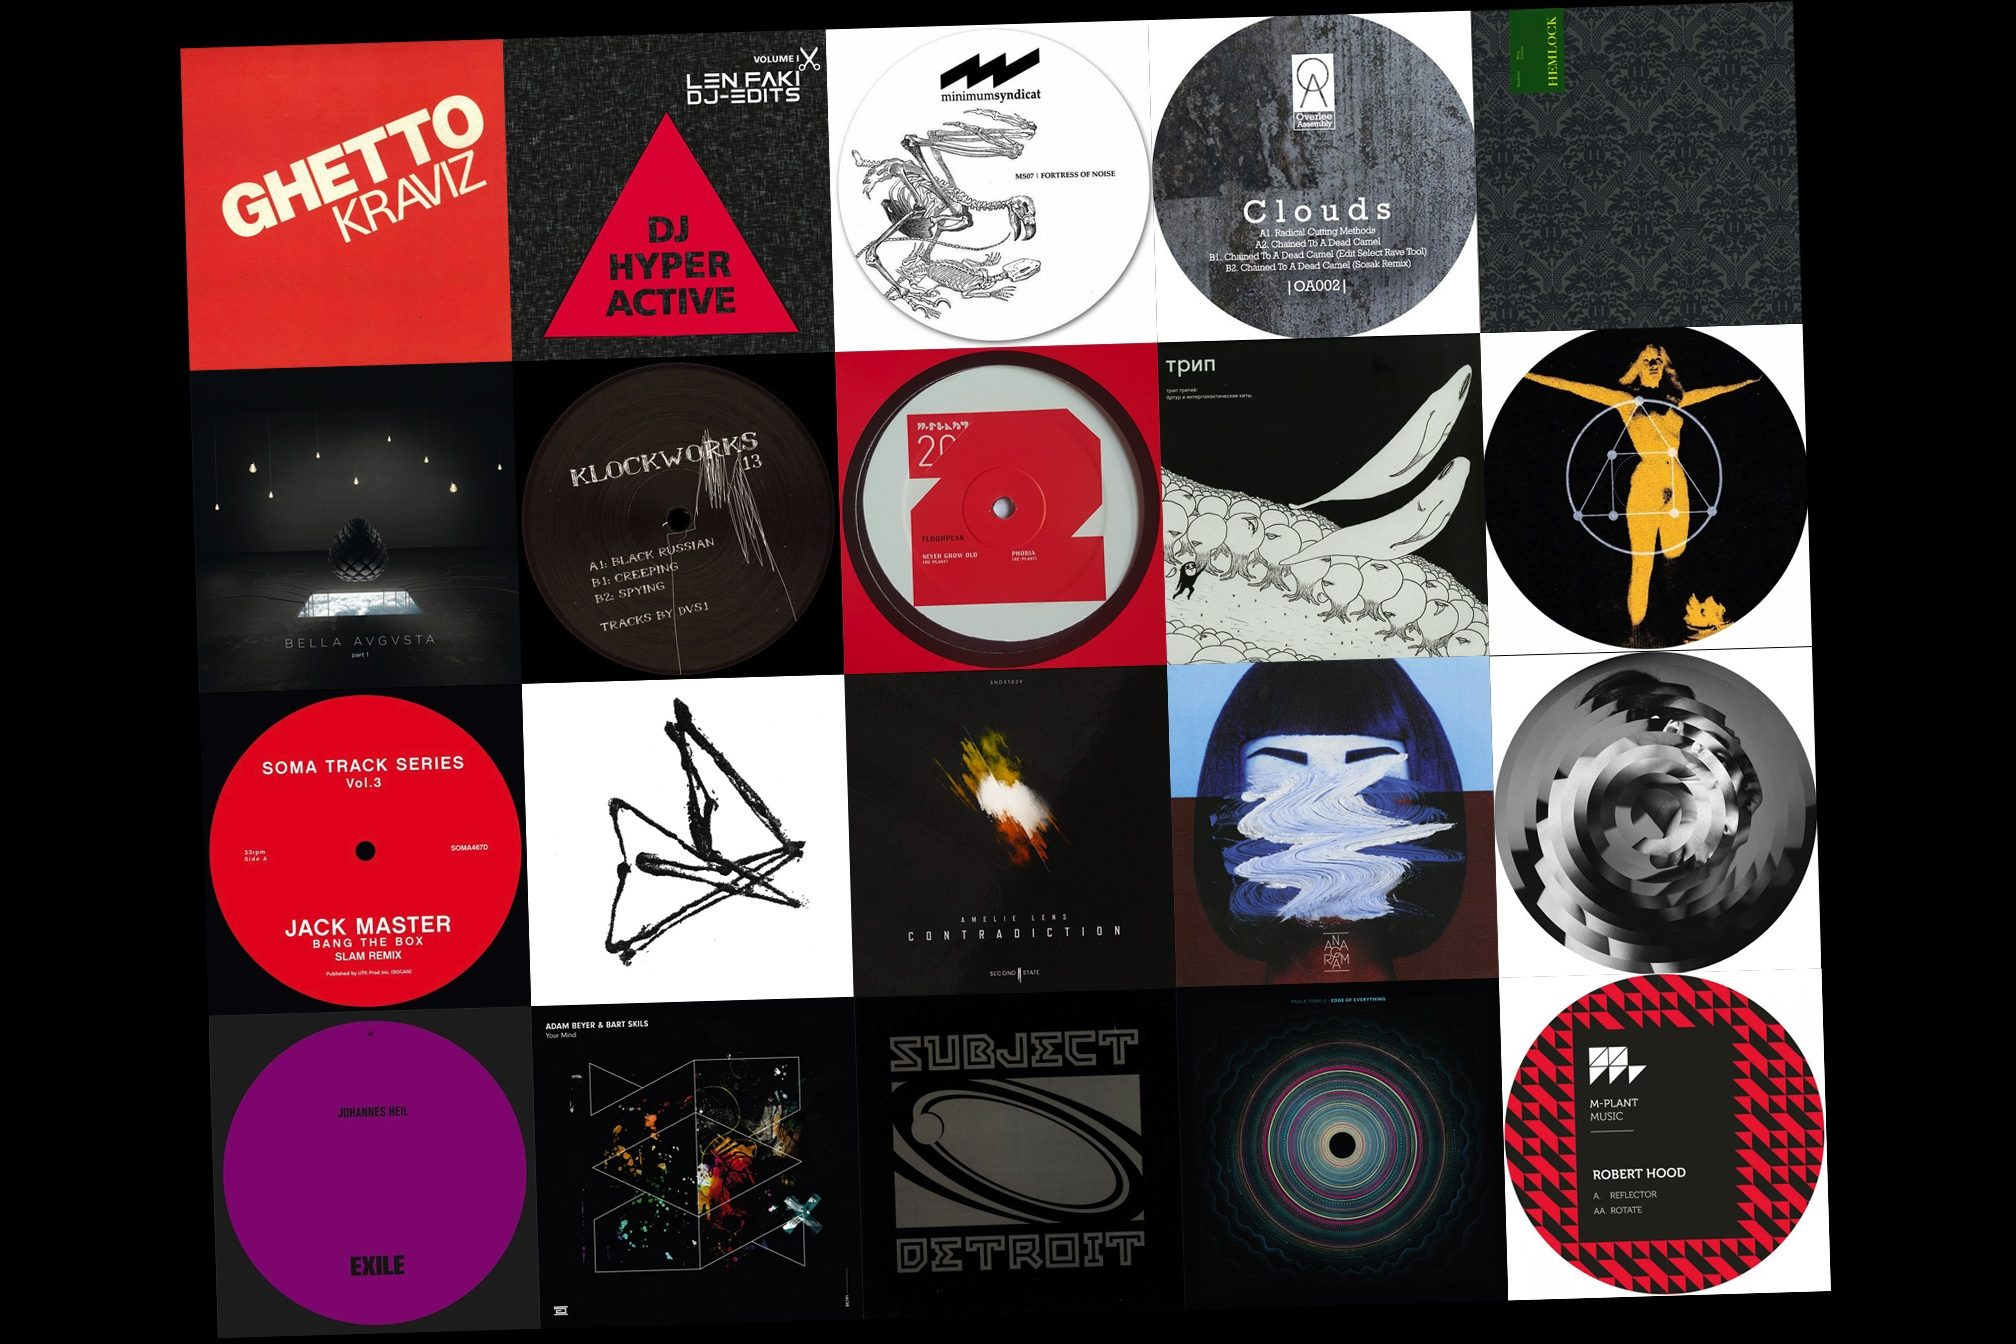 20 of the best techno tracks released this decade - Lists